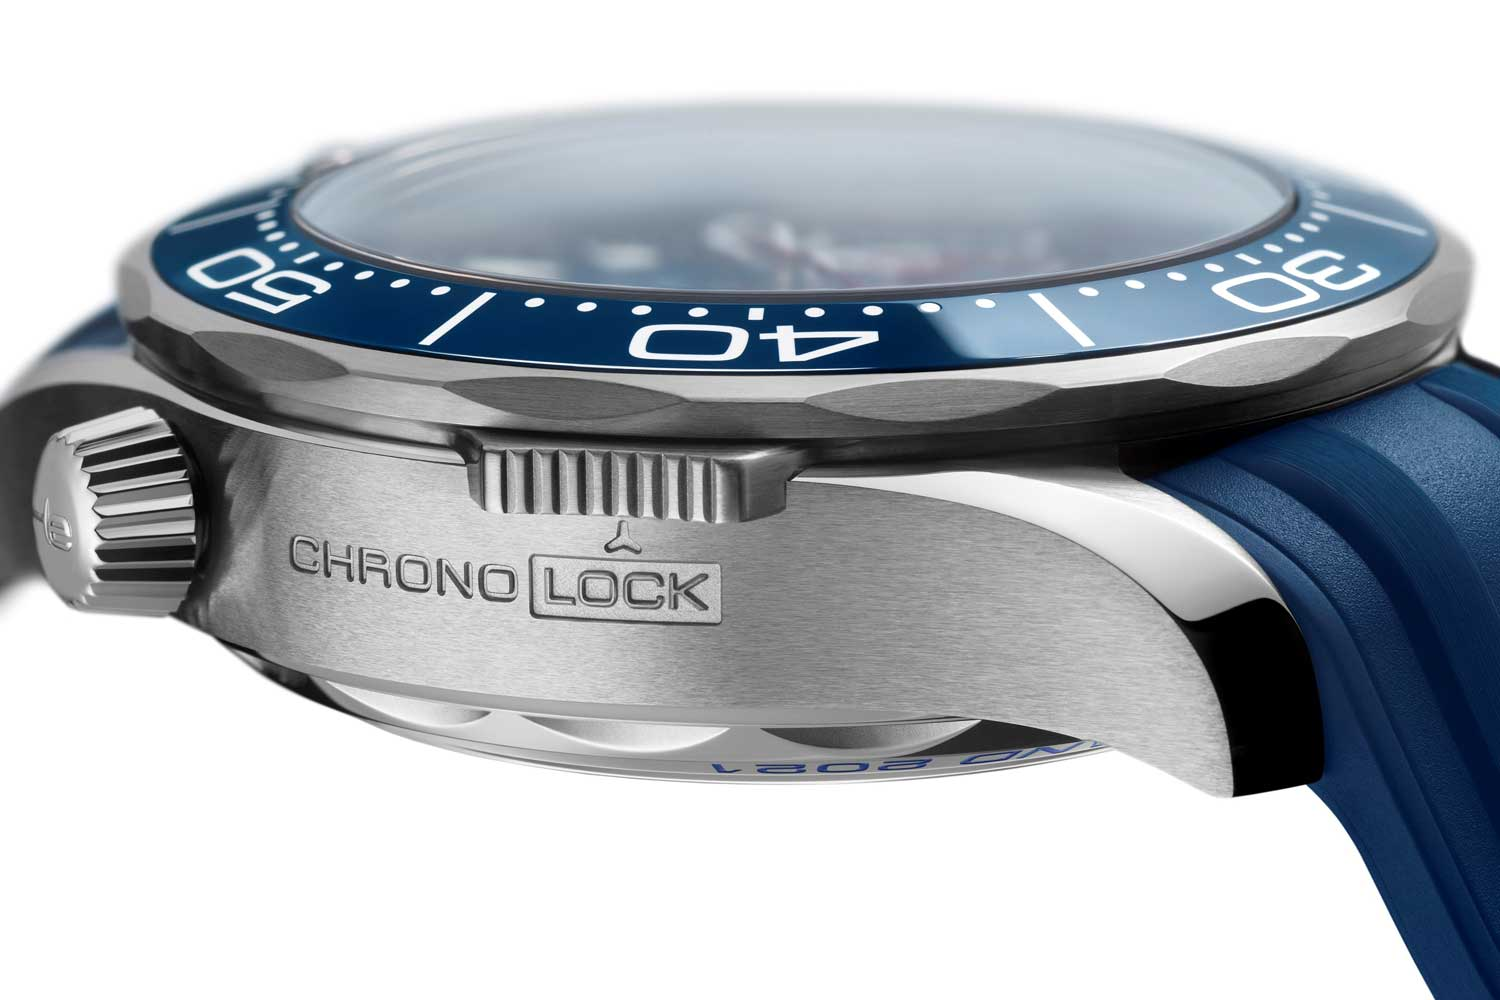 A sliding button at 8 o'clock allows the wearer to lock the chronograph pushers in place, preventing accidental activation during hectic sailing.